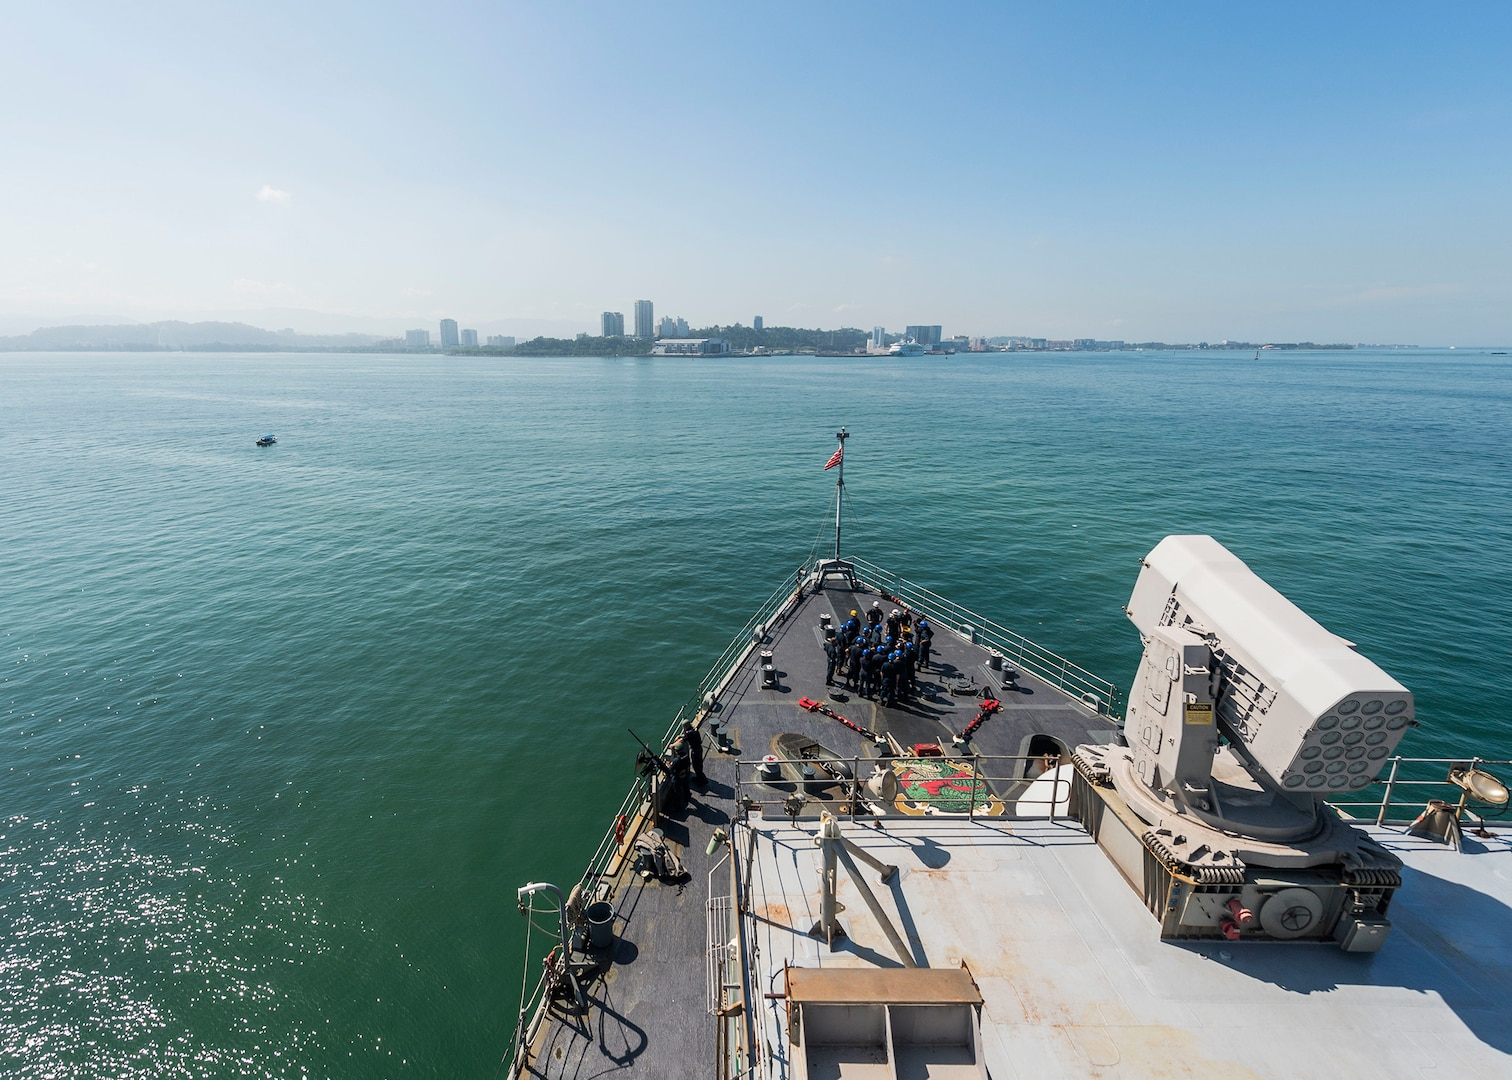 USS Ashland Visits Malaysia during 7th Fleet Operations